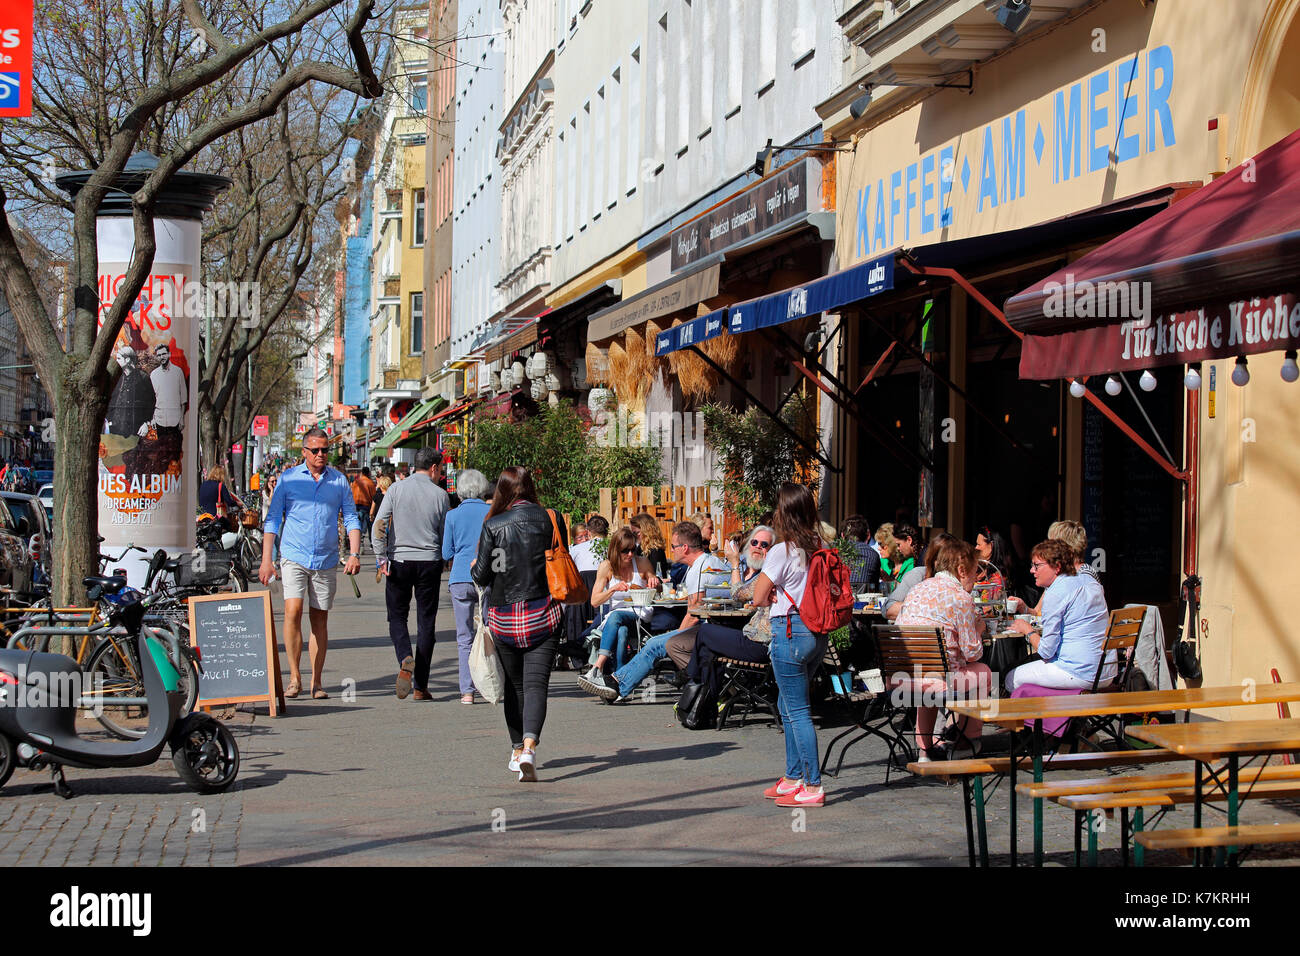 Küche Bar Kreuzberg Berlin Bergmannstr Kreuzberg Stock Photo 159631517 Alamy